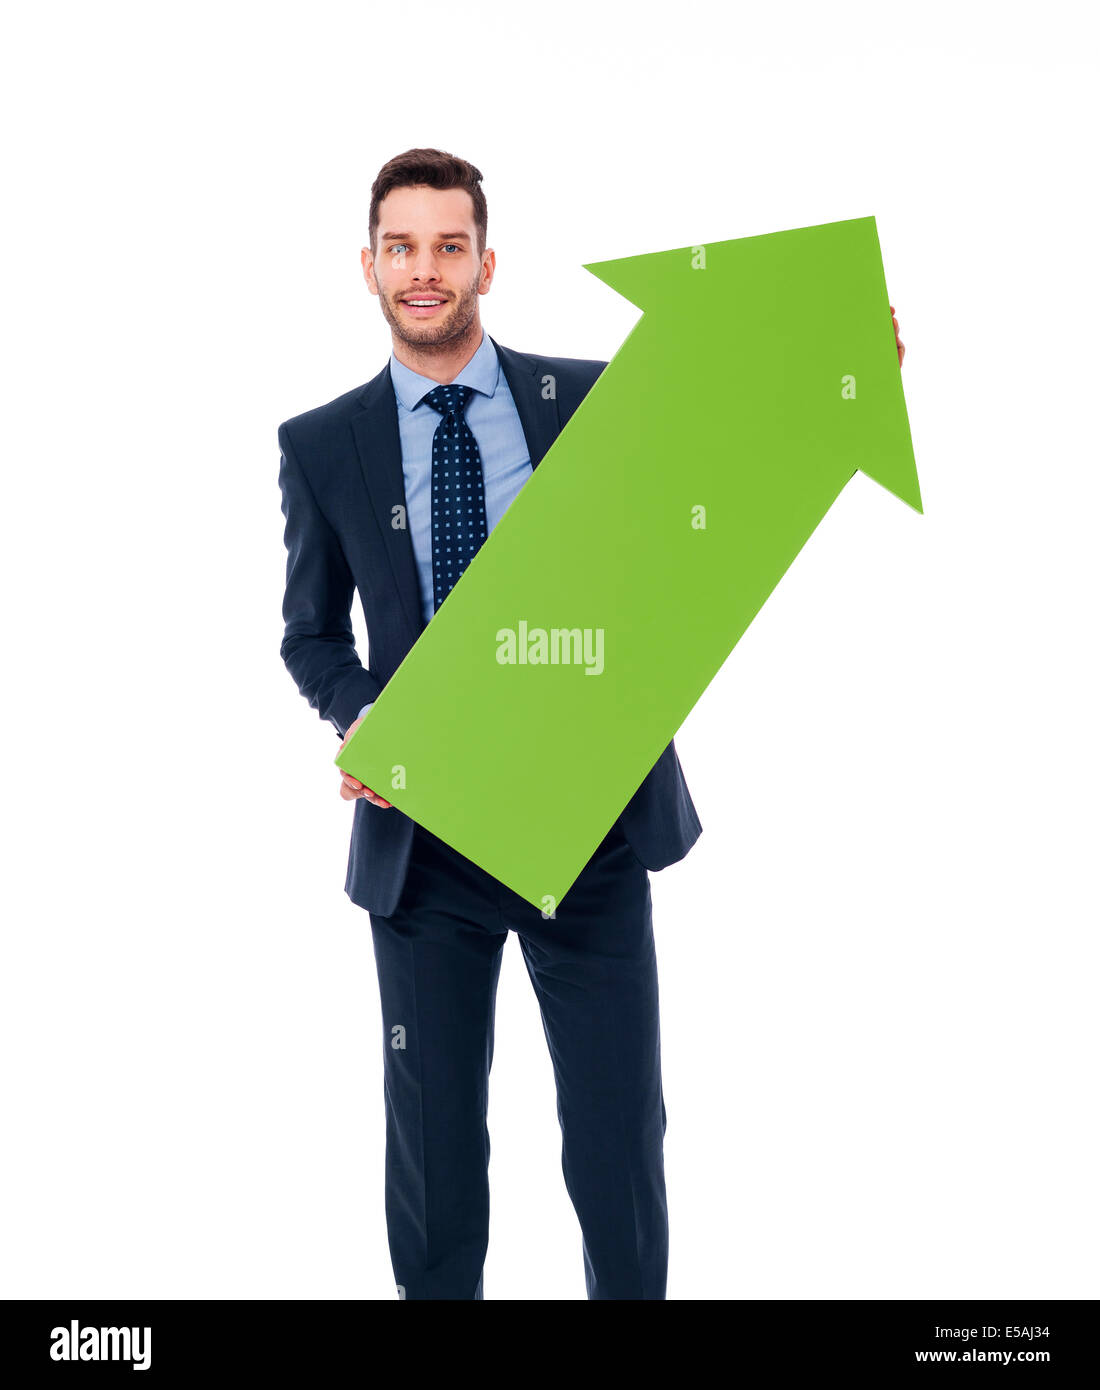 Happy businessman with a green arrow, Debica, Poland - Stock Image